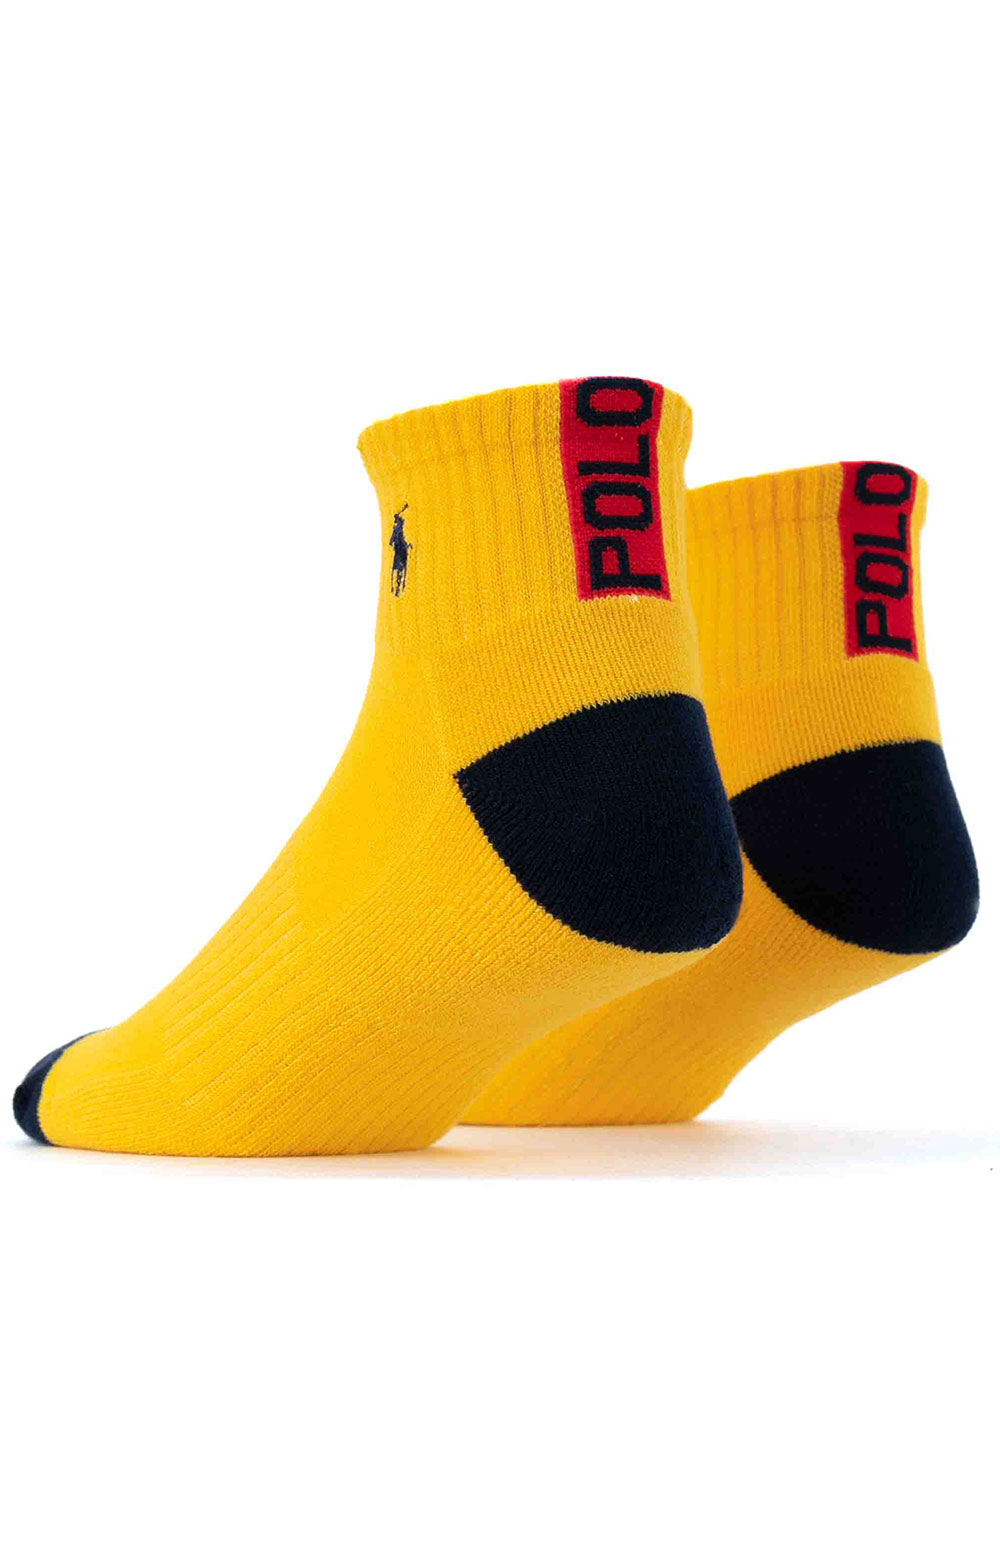 Colorblock Cushioned Quarter Socks - 6 Pack 13